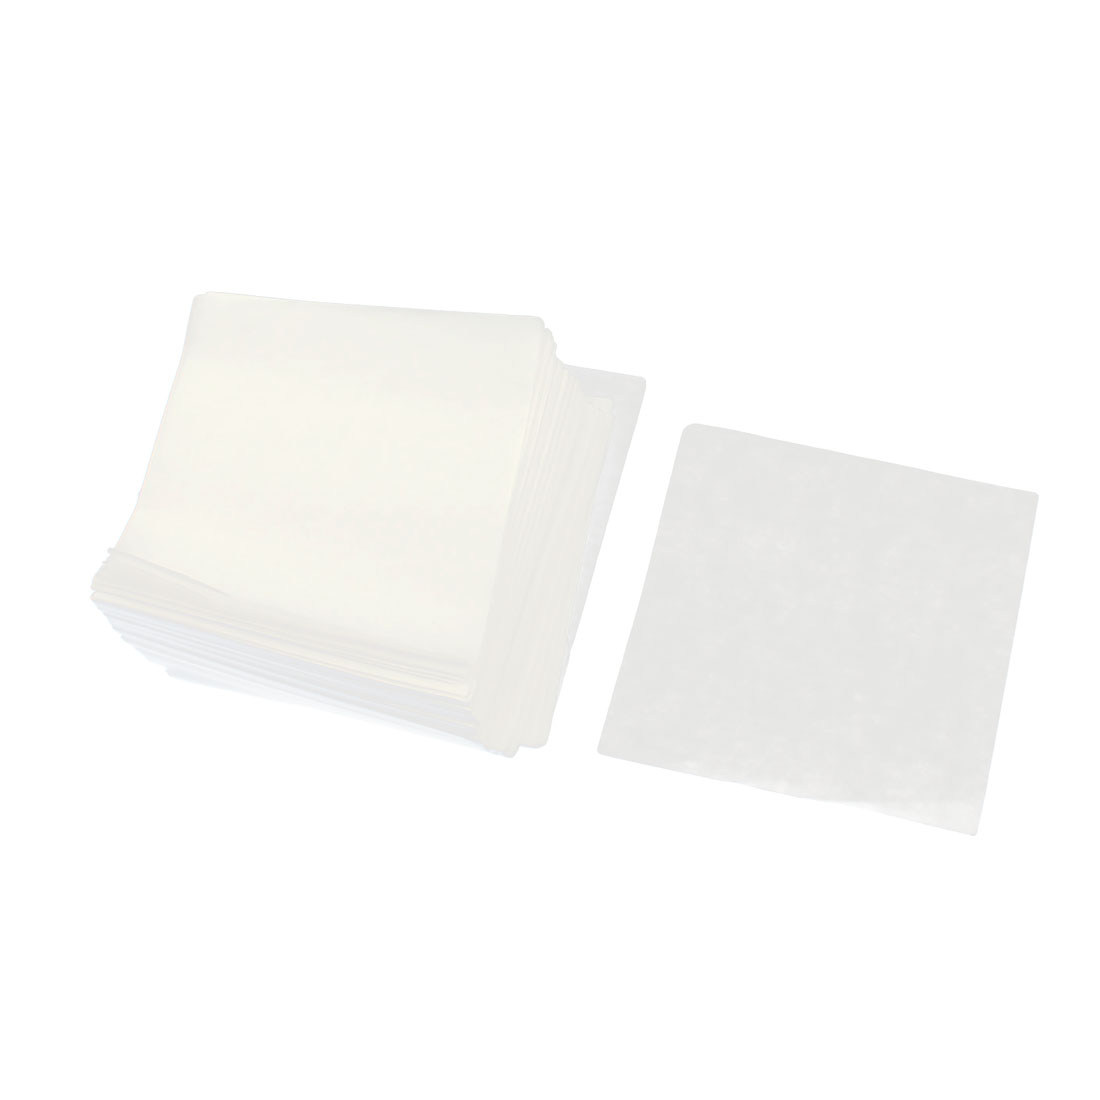 500pcs Laboratory Analytical Square Shaped Weighing Paper 75mmx75mm